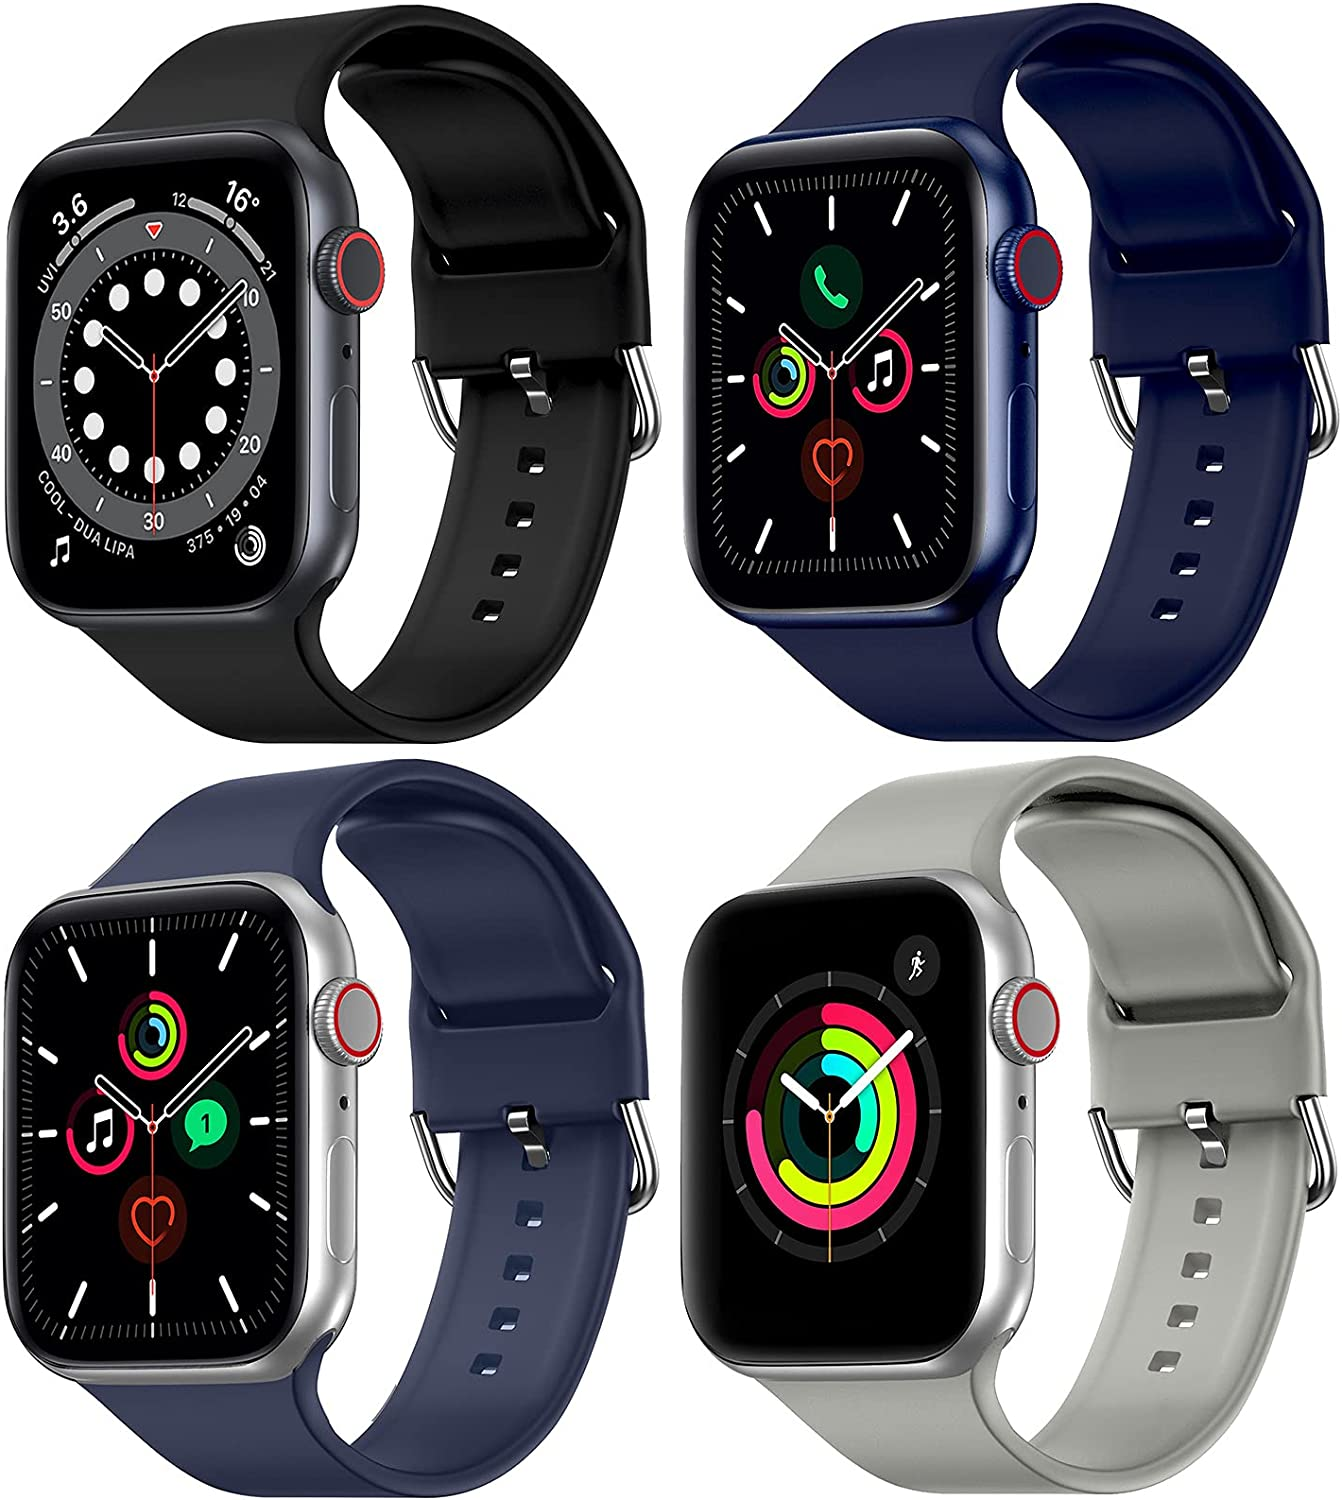 RARF 4-Pack Bands Compatible with Apple Watch 38mm 40mm 42mm 44mm for Women Men, Sport Replacement Silicone Strap Breathable